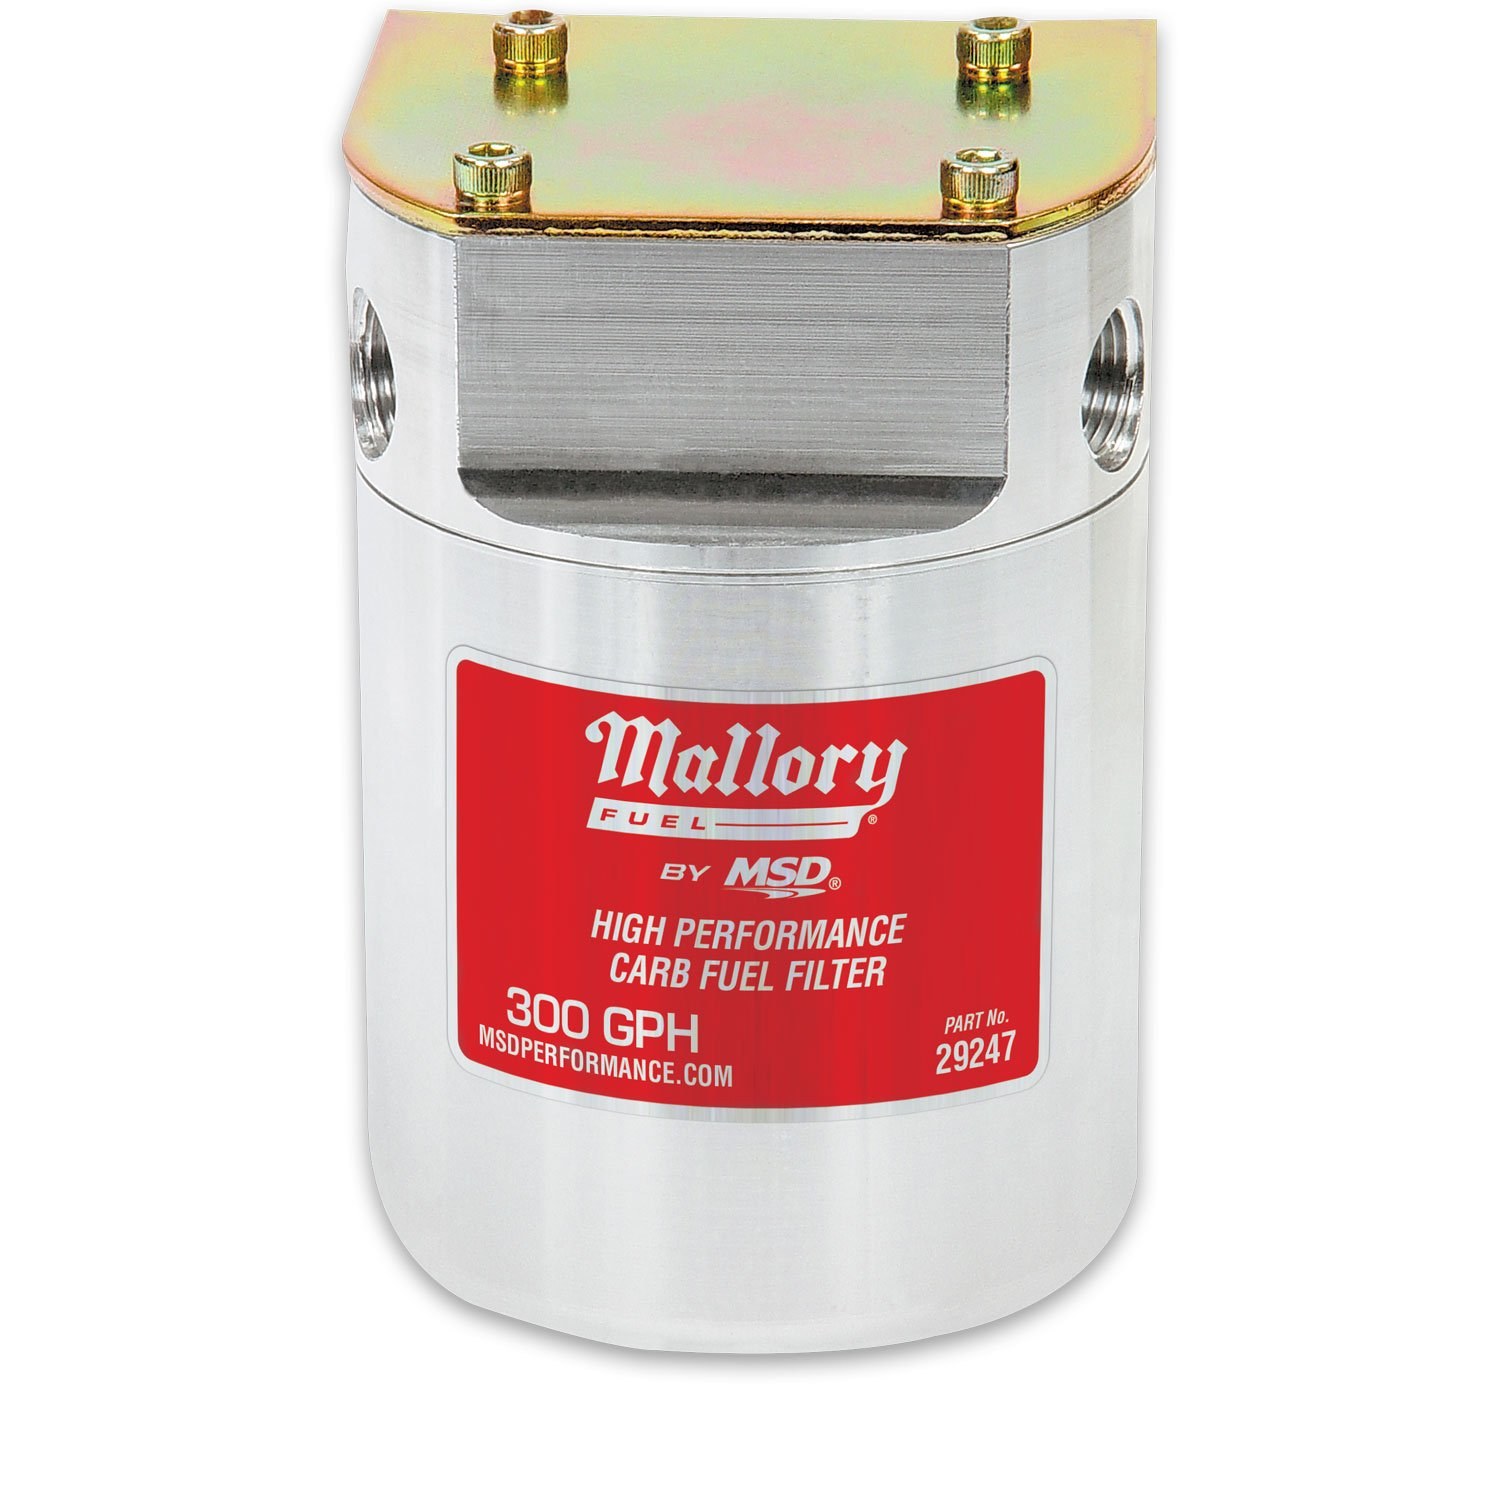 hight resolution of 29247 mallory low pressure carbureted fuel filter image